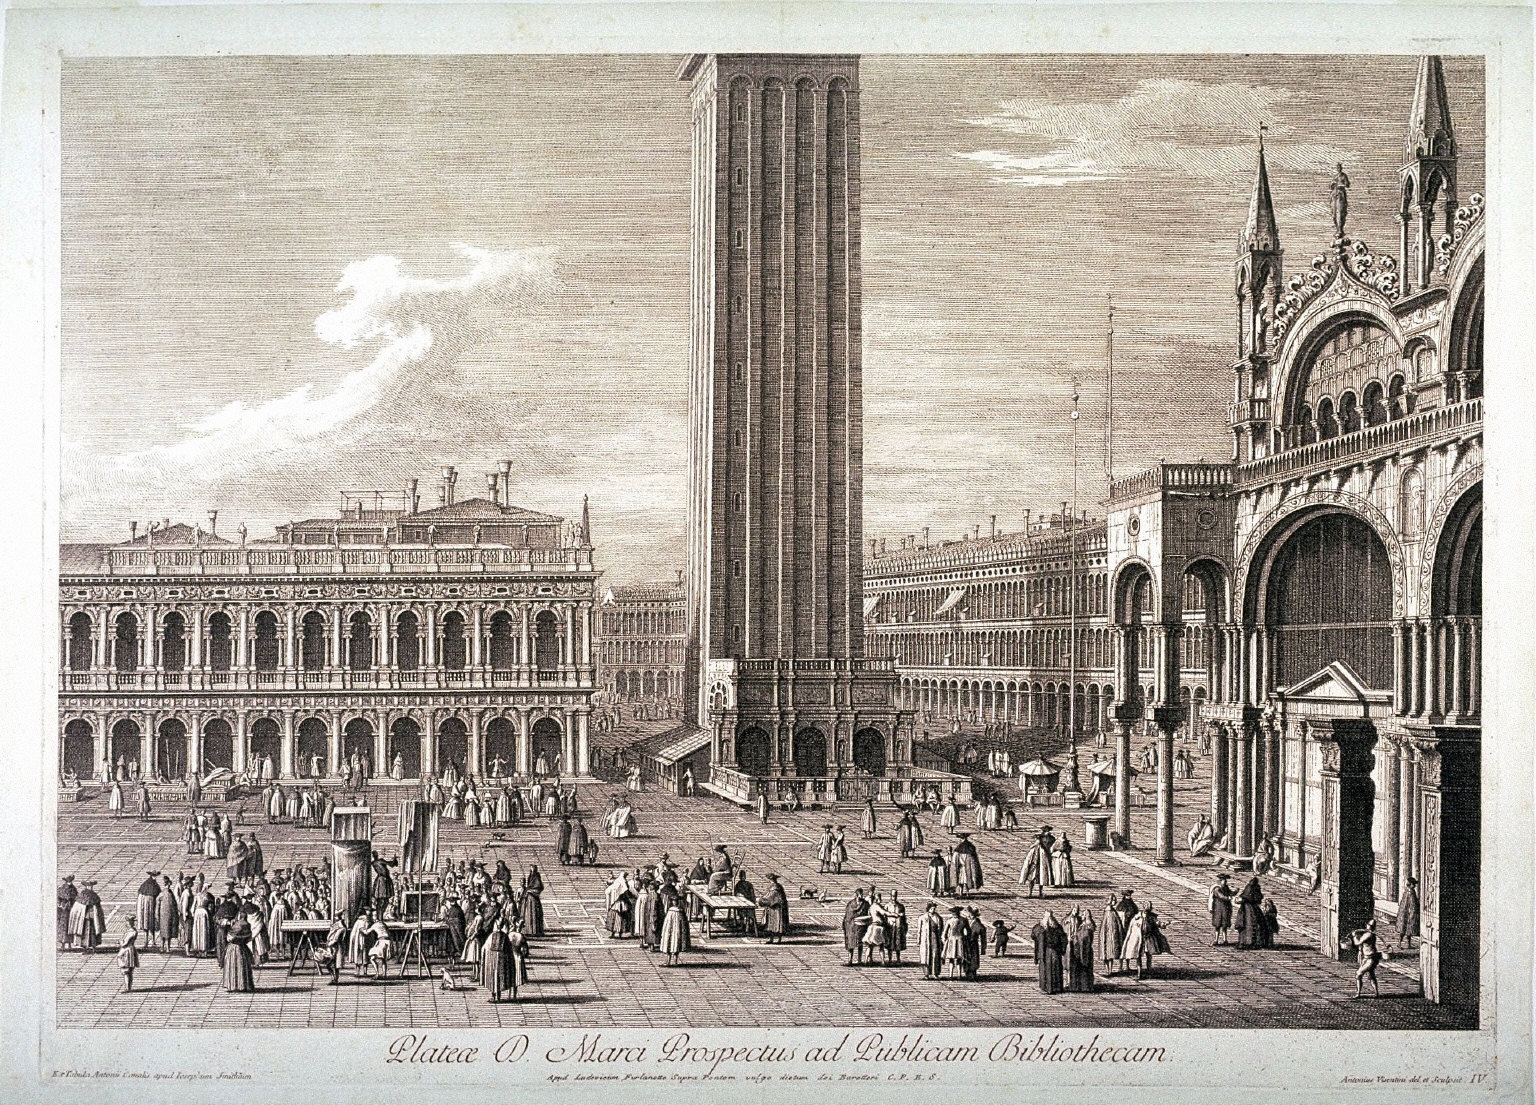 Piazza San Marco, View of the Public Library, pl. IV from a series of four scenes of the Piazza after Canaletto